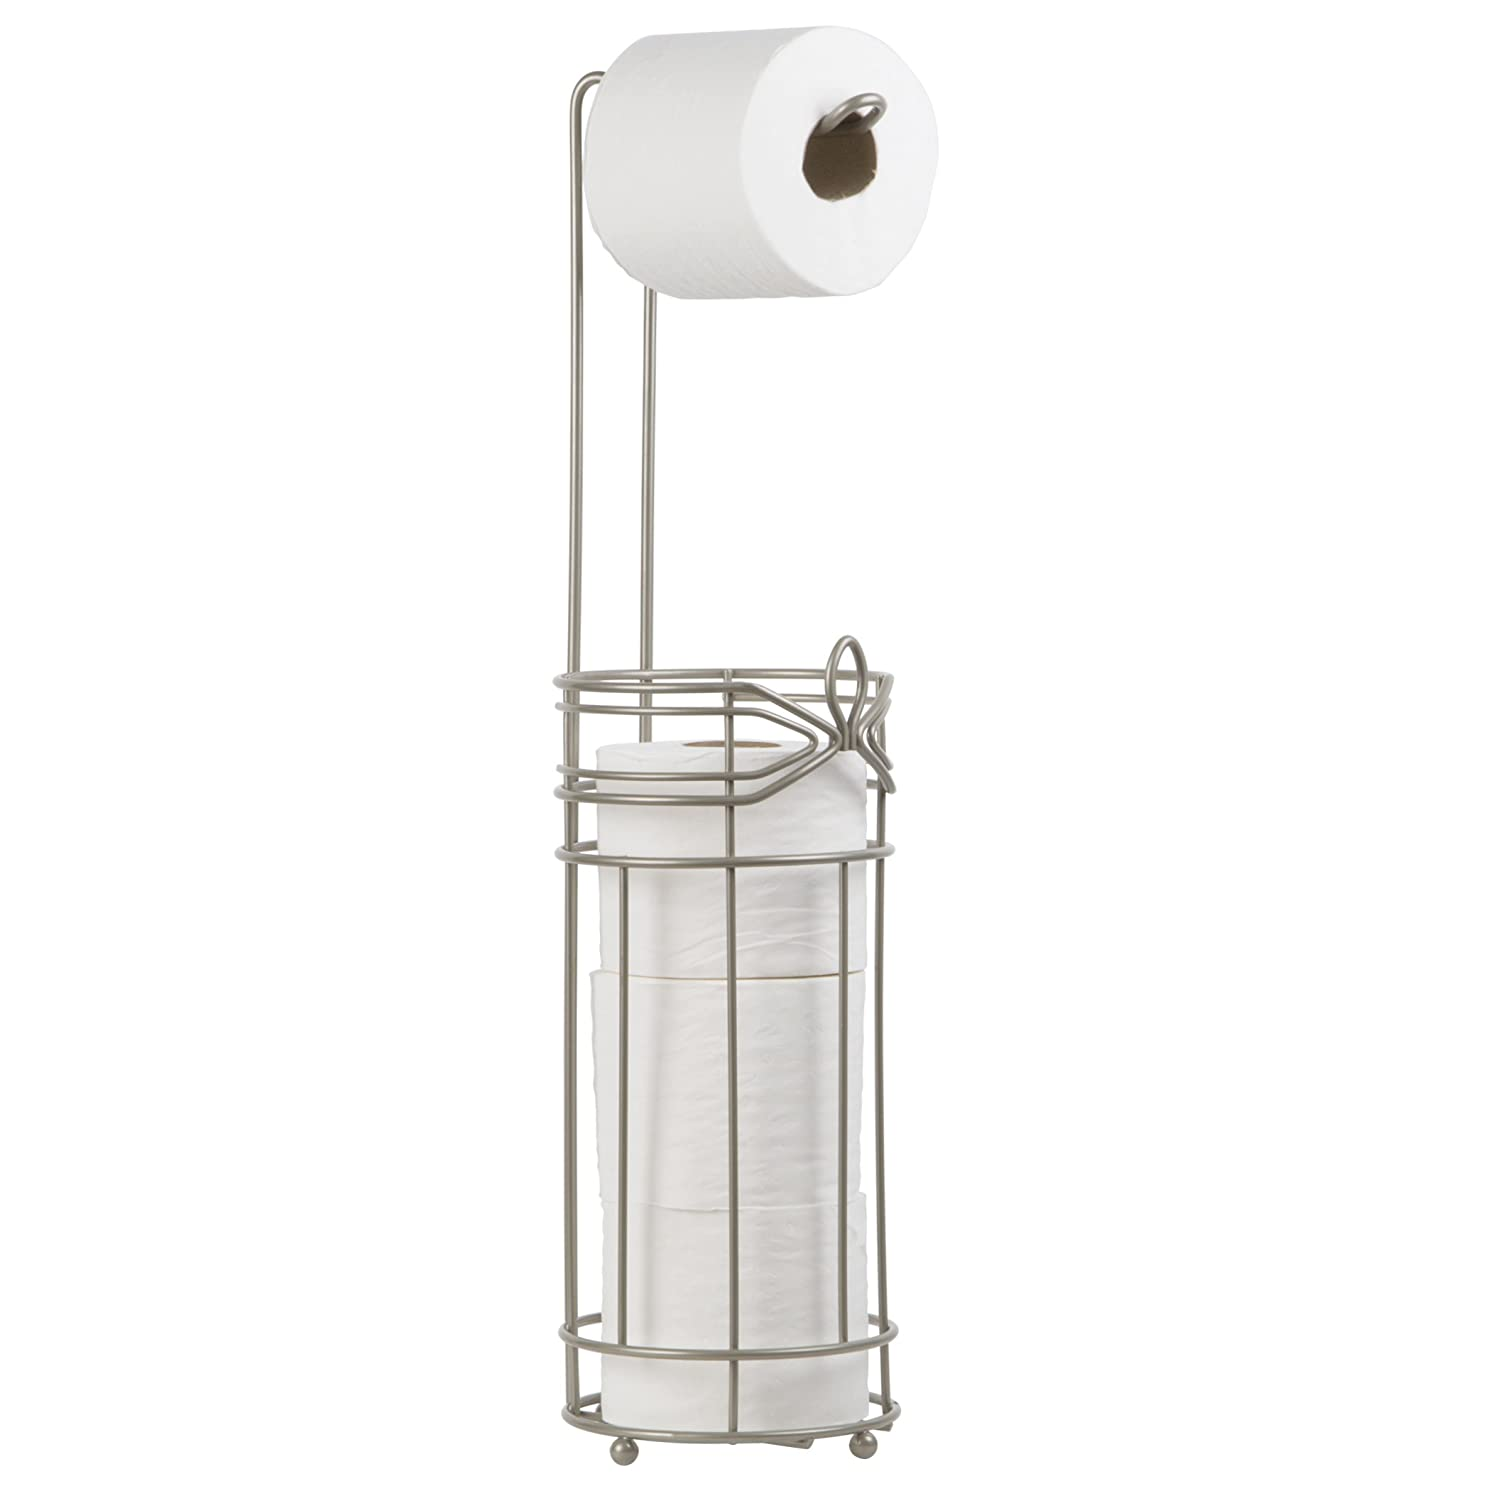 Satin Nickel Toilet Paper Reserve with Hook Modern Style Holder with Dispenser - Hold 4 Tissue Rolls - Free Standing Bathroom Storage Accessory